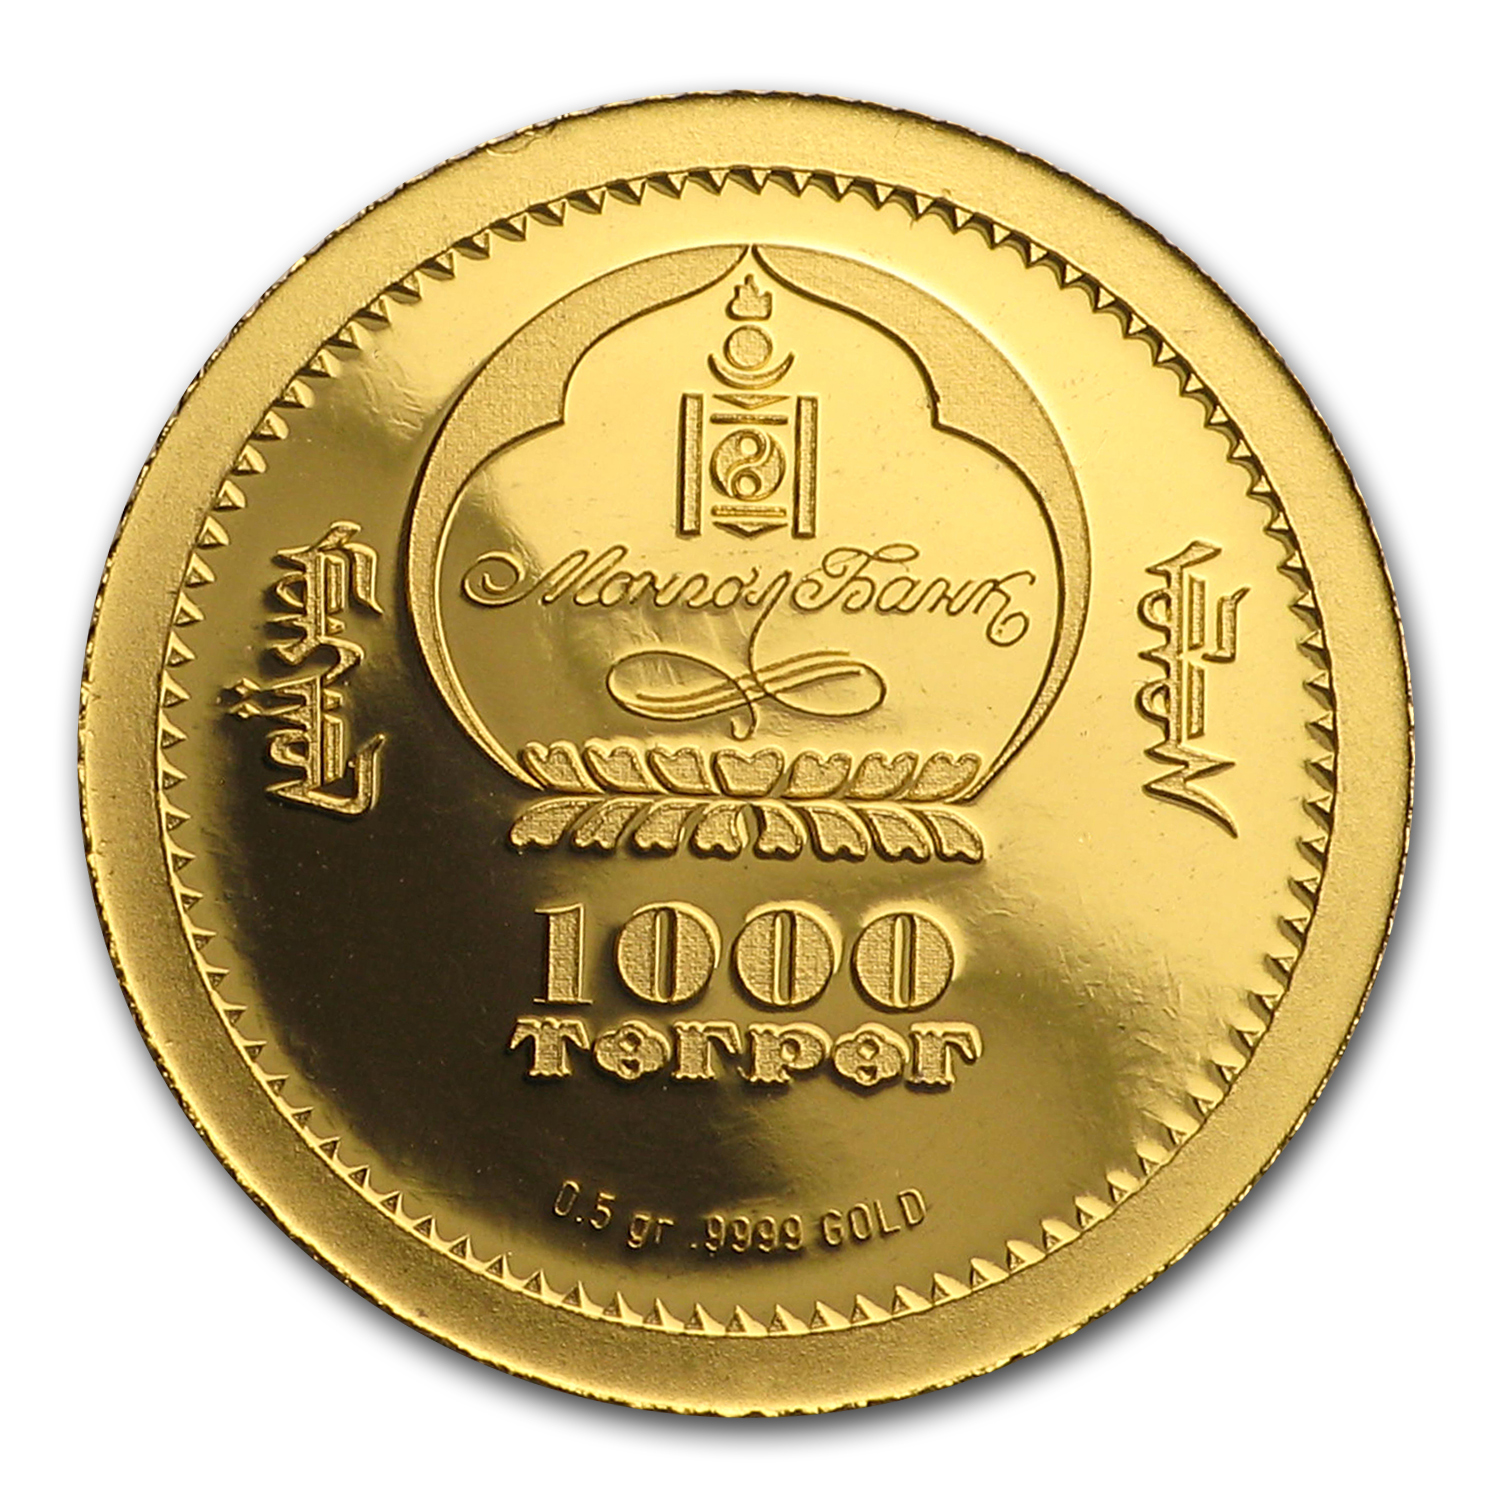 2017 Mongolia 1/2 gram Proof Gold Wildlife Protection Sable